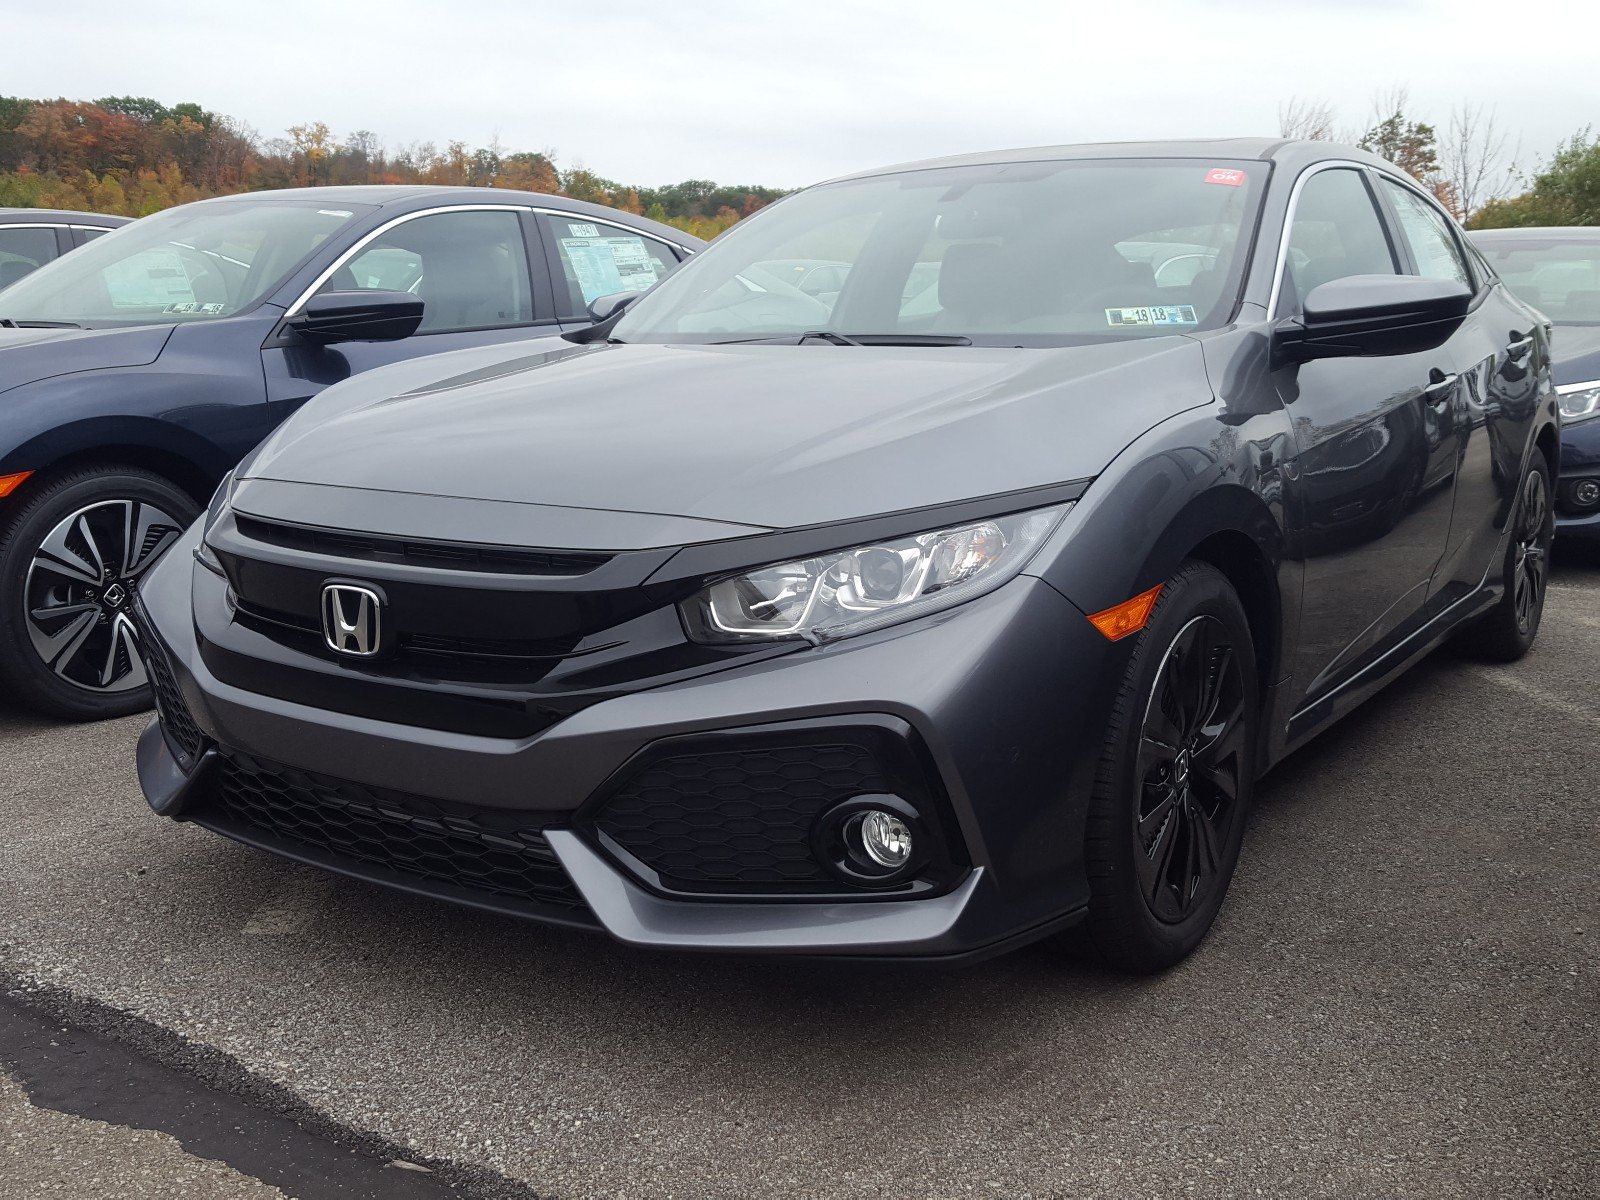 Honda civic hatchback lease specials new honda release for Honda civic specials